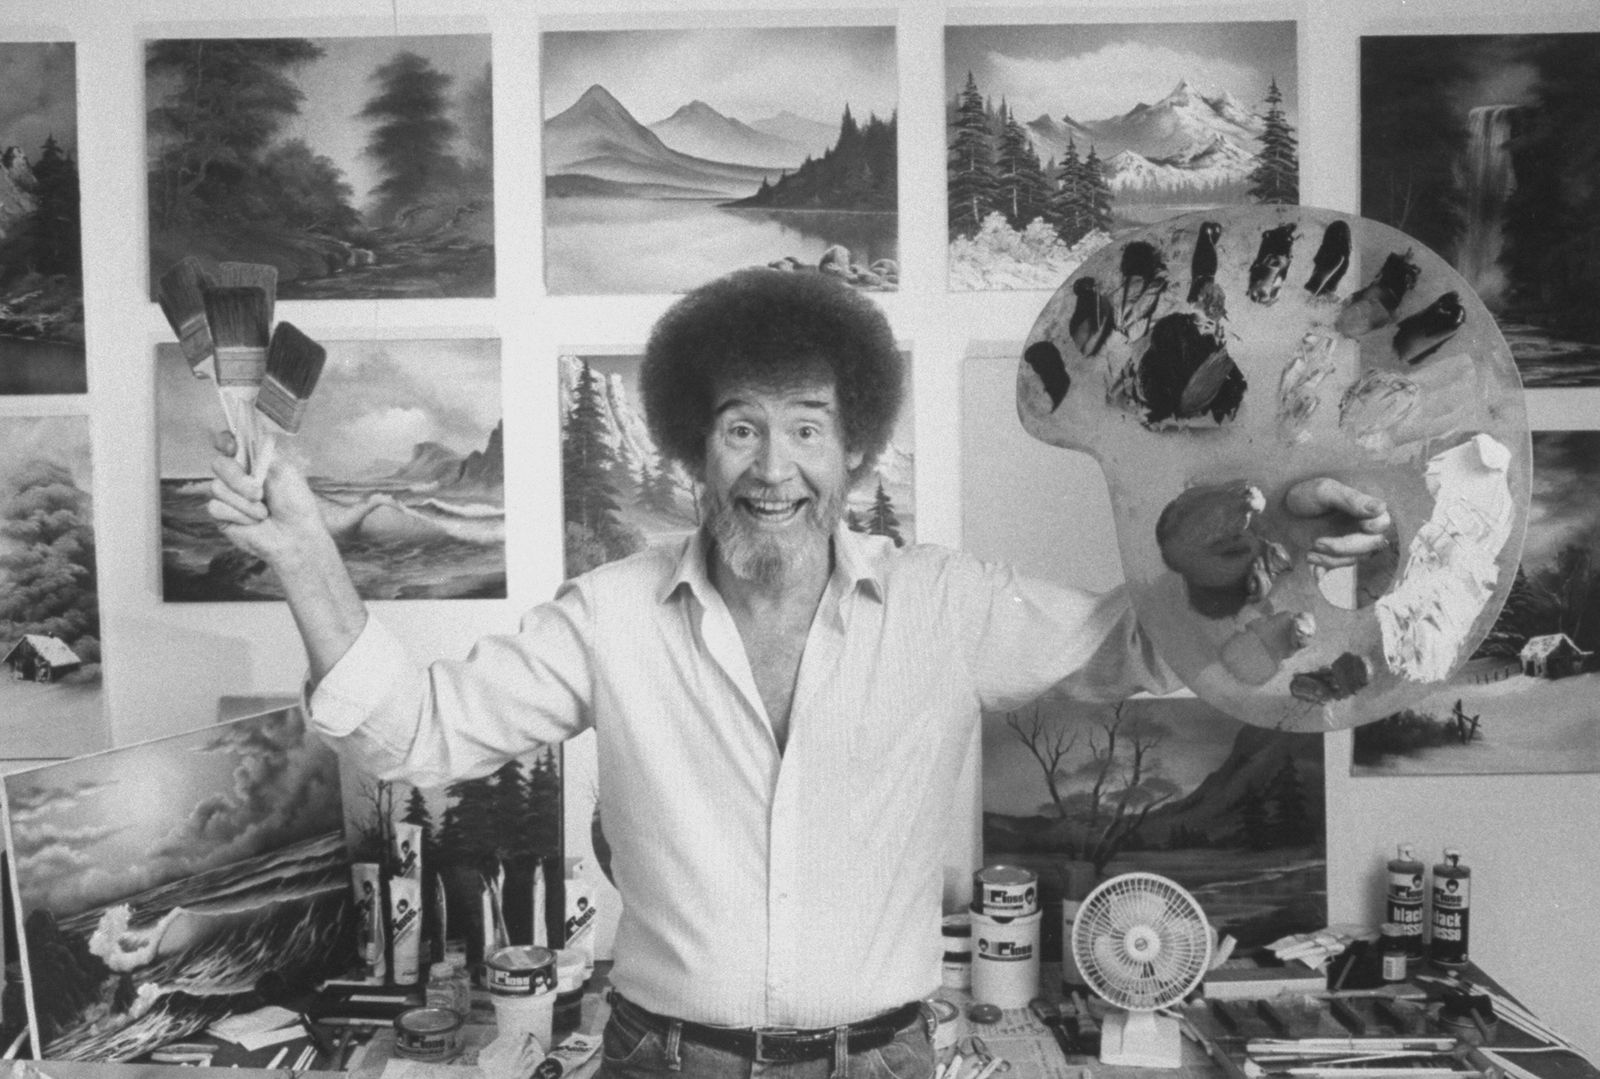 Online: Paint with Bob Ross